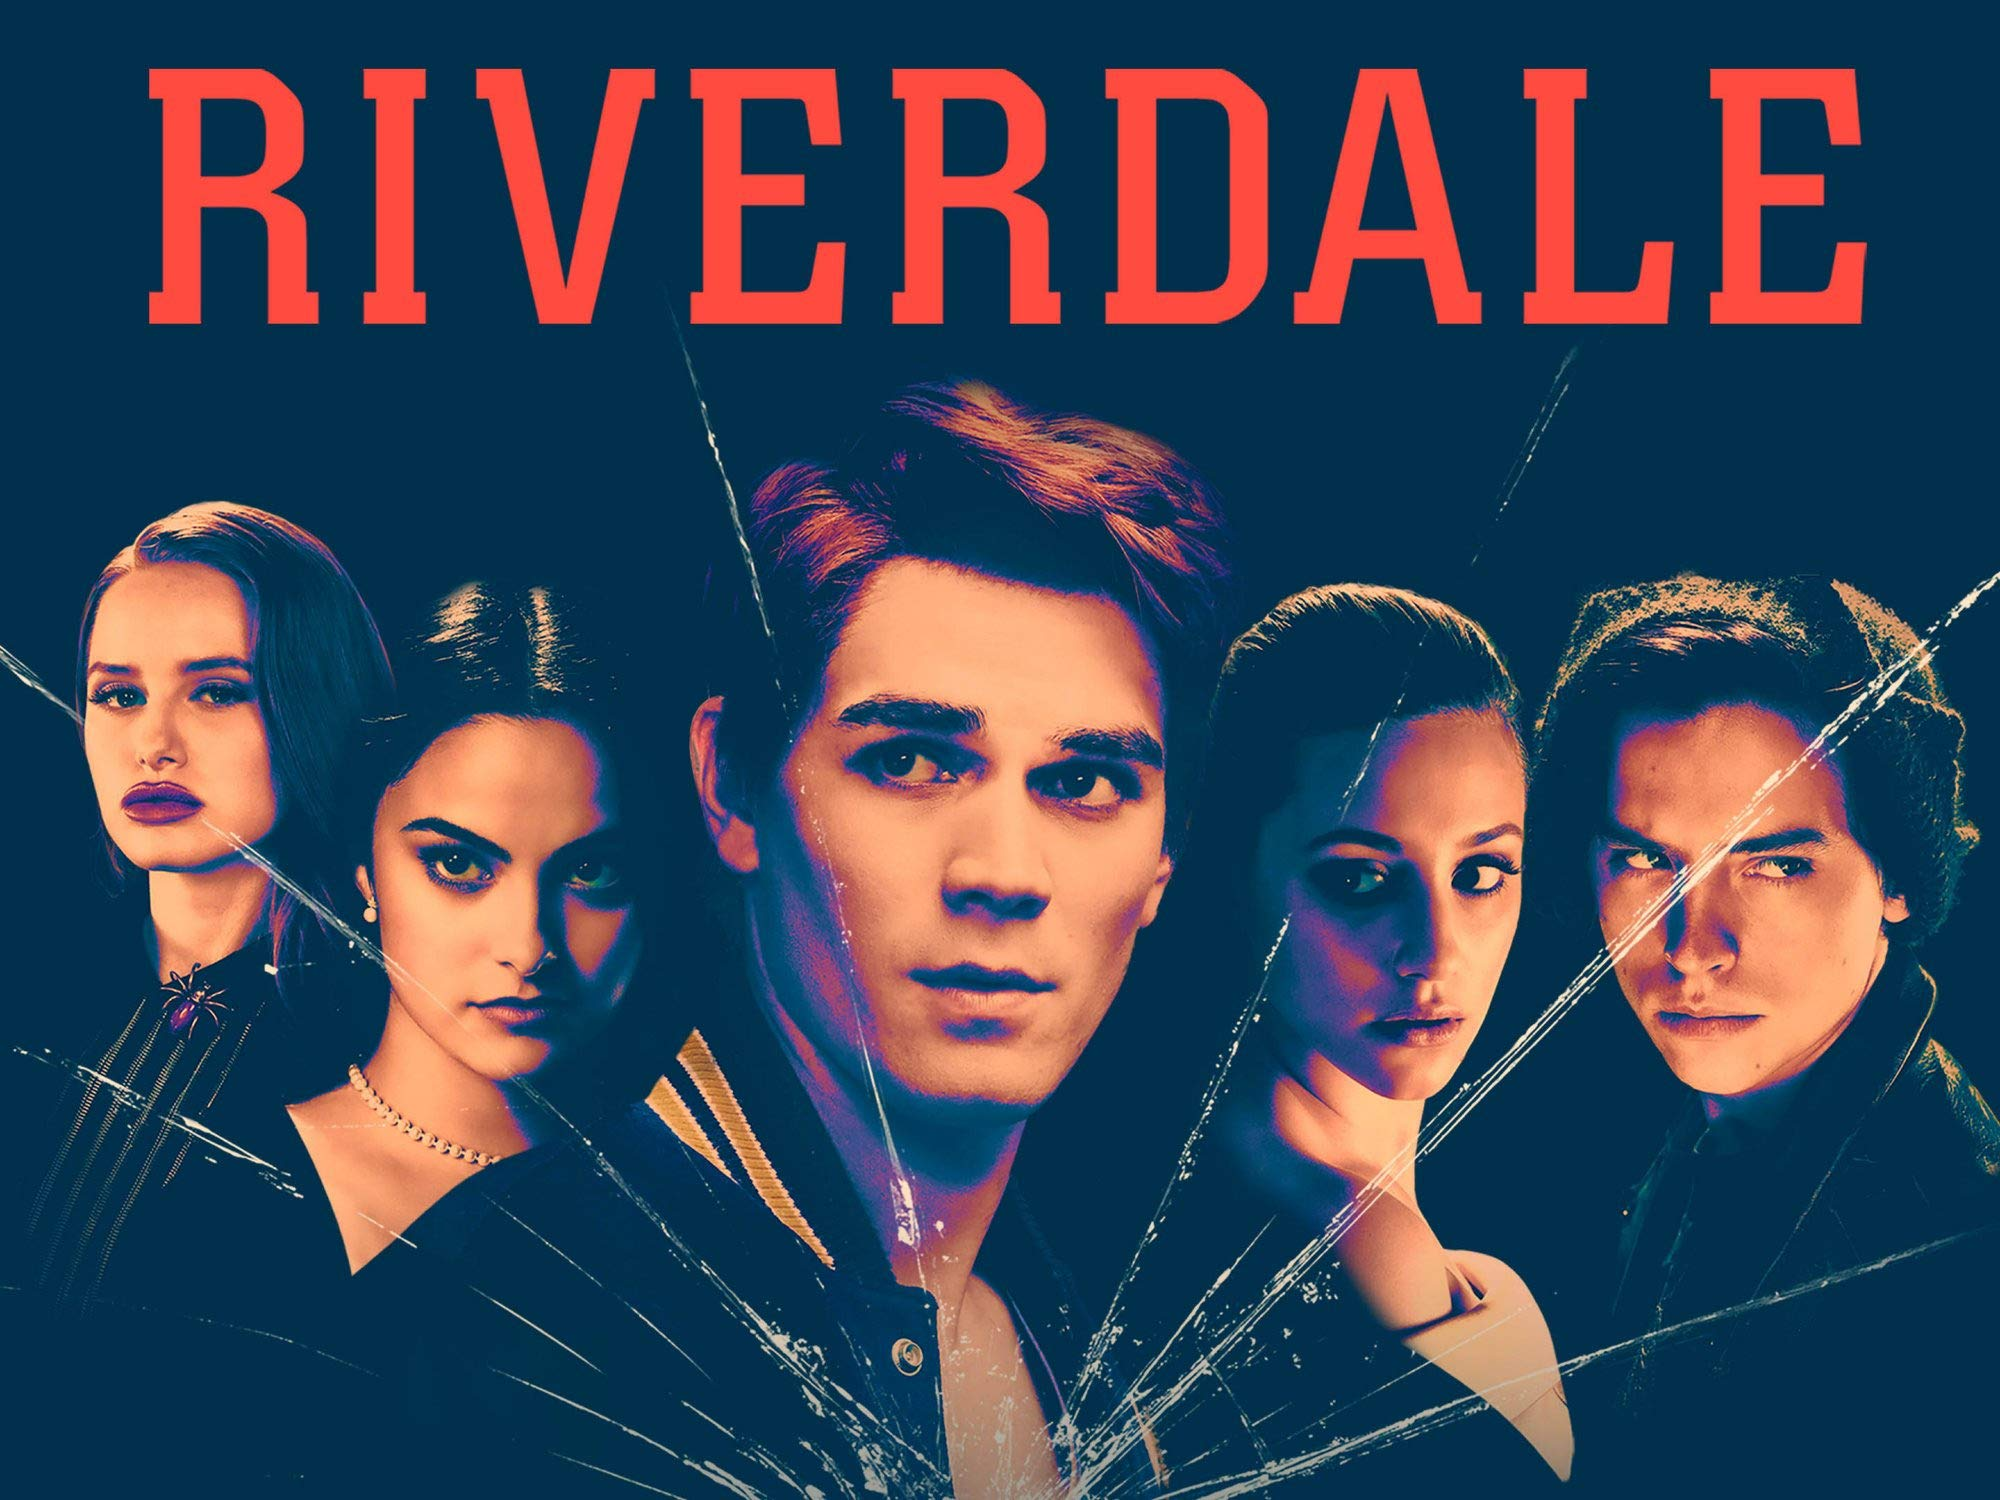 Amazon.com: Watch Riverdale: Season 4 | Prime Video